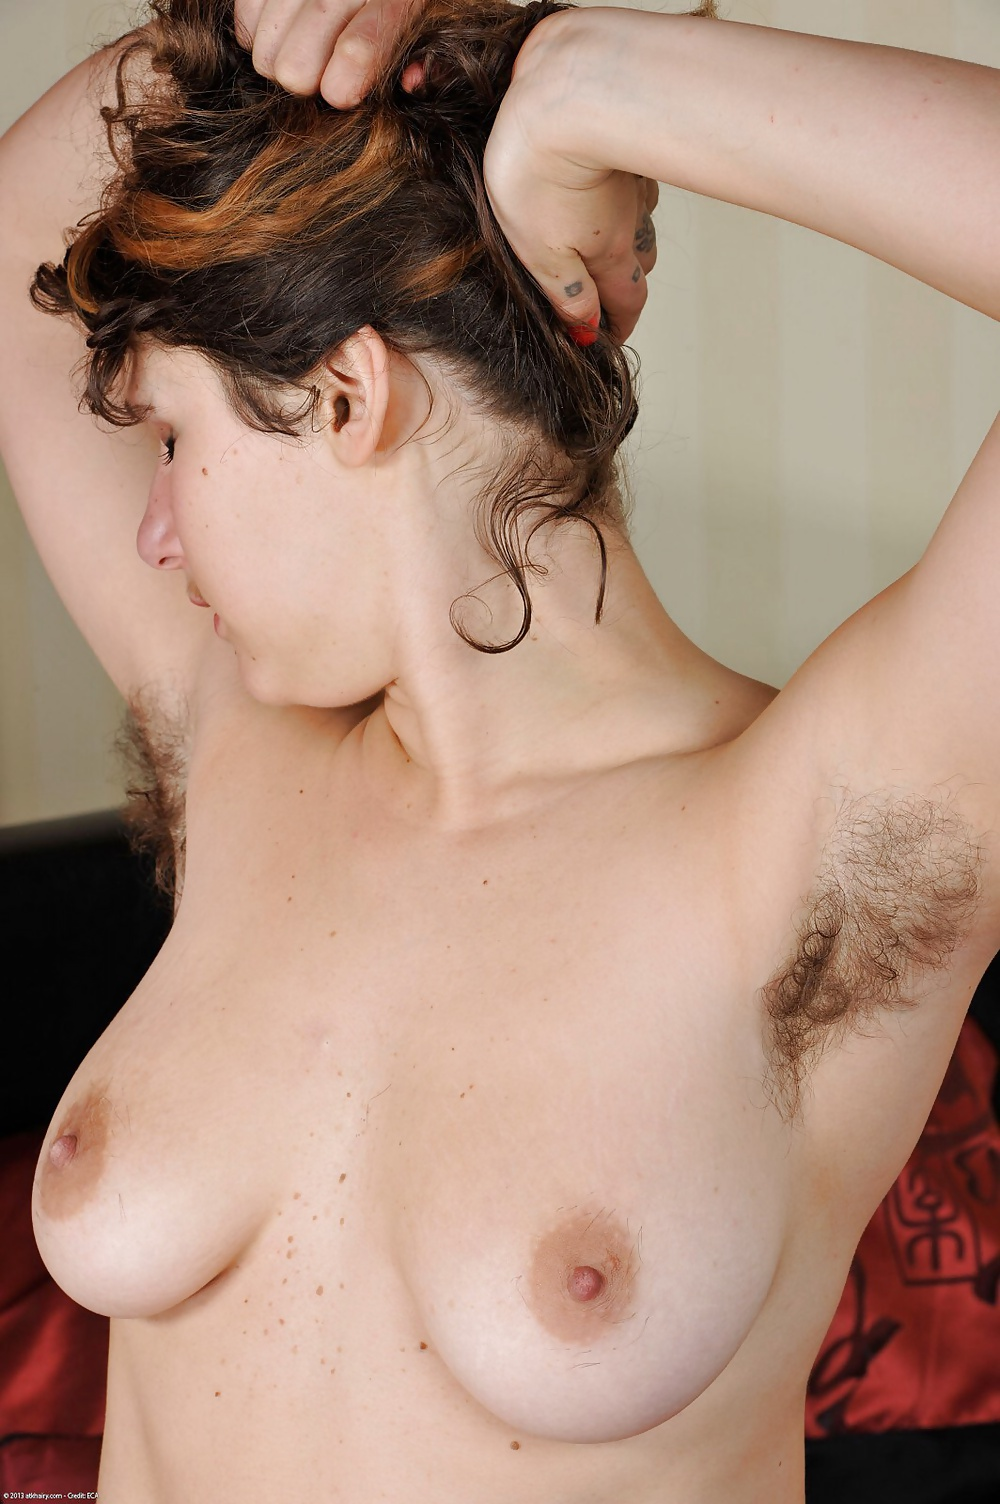 Hairy arms pics